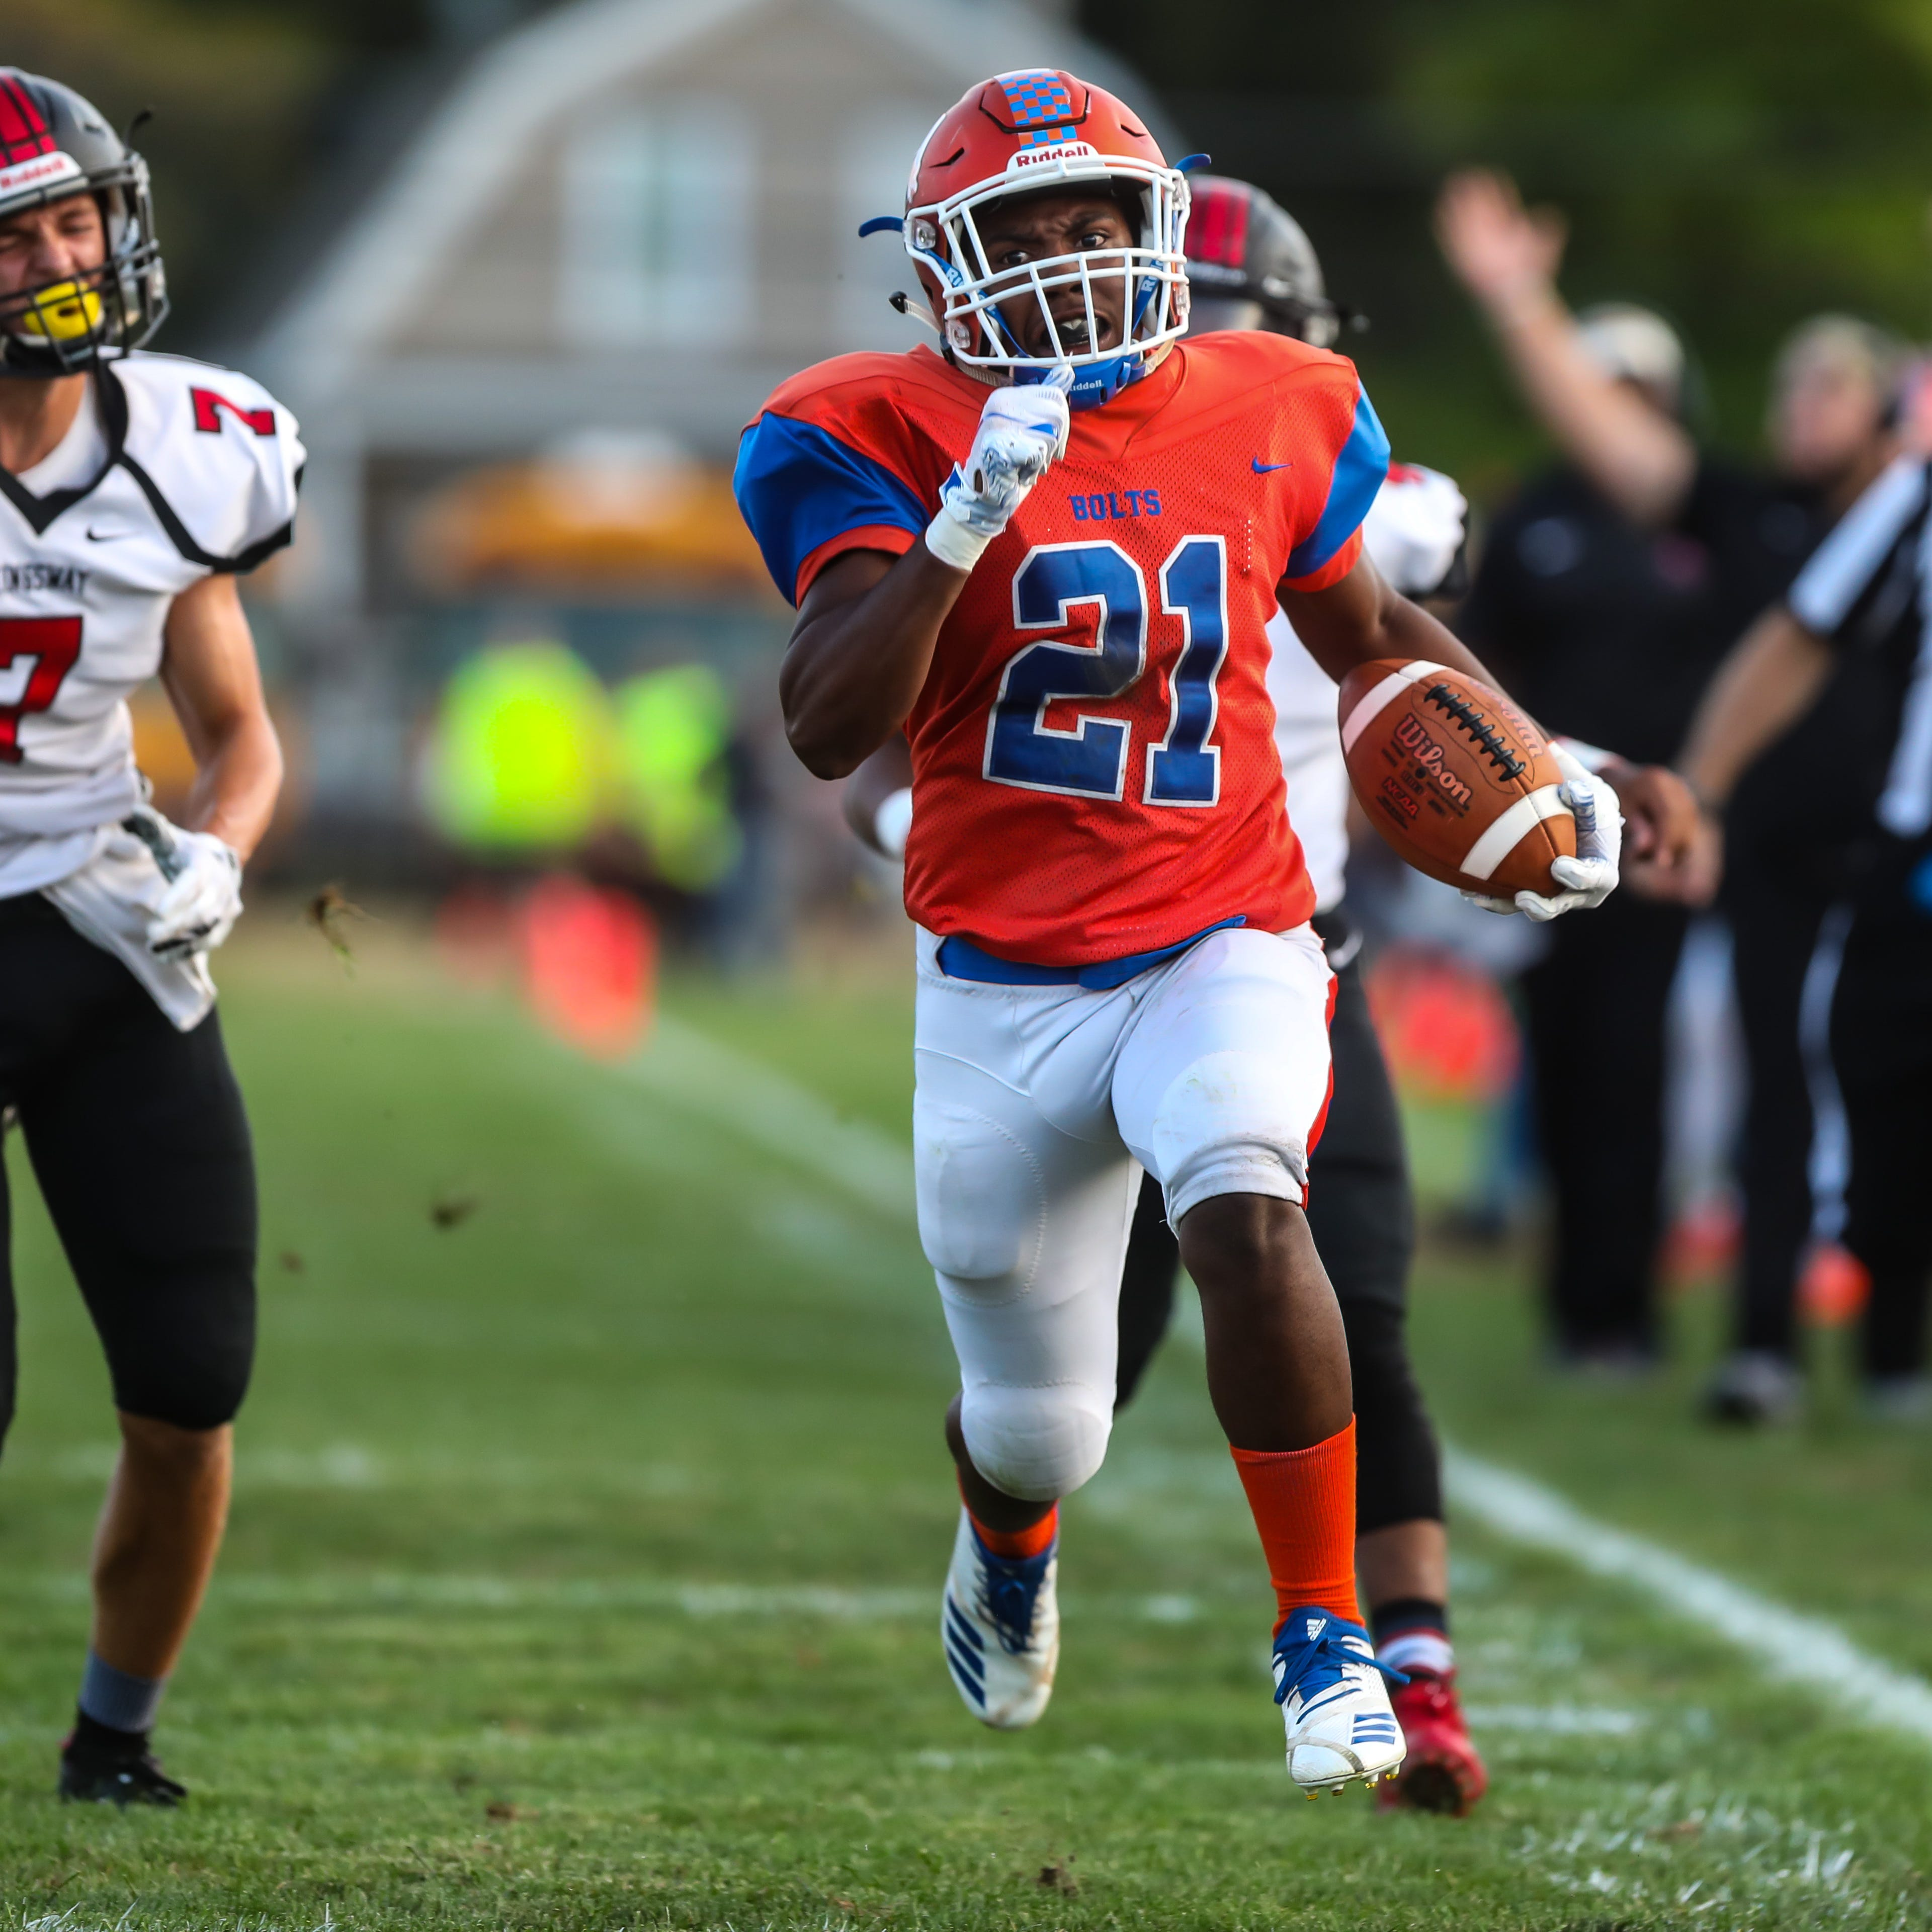 H.S. Football: Millville tops Kingsway for first win of season